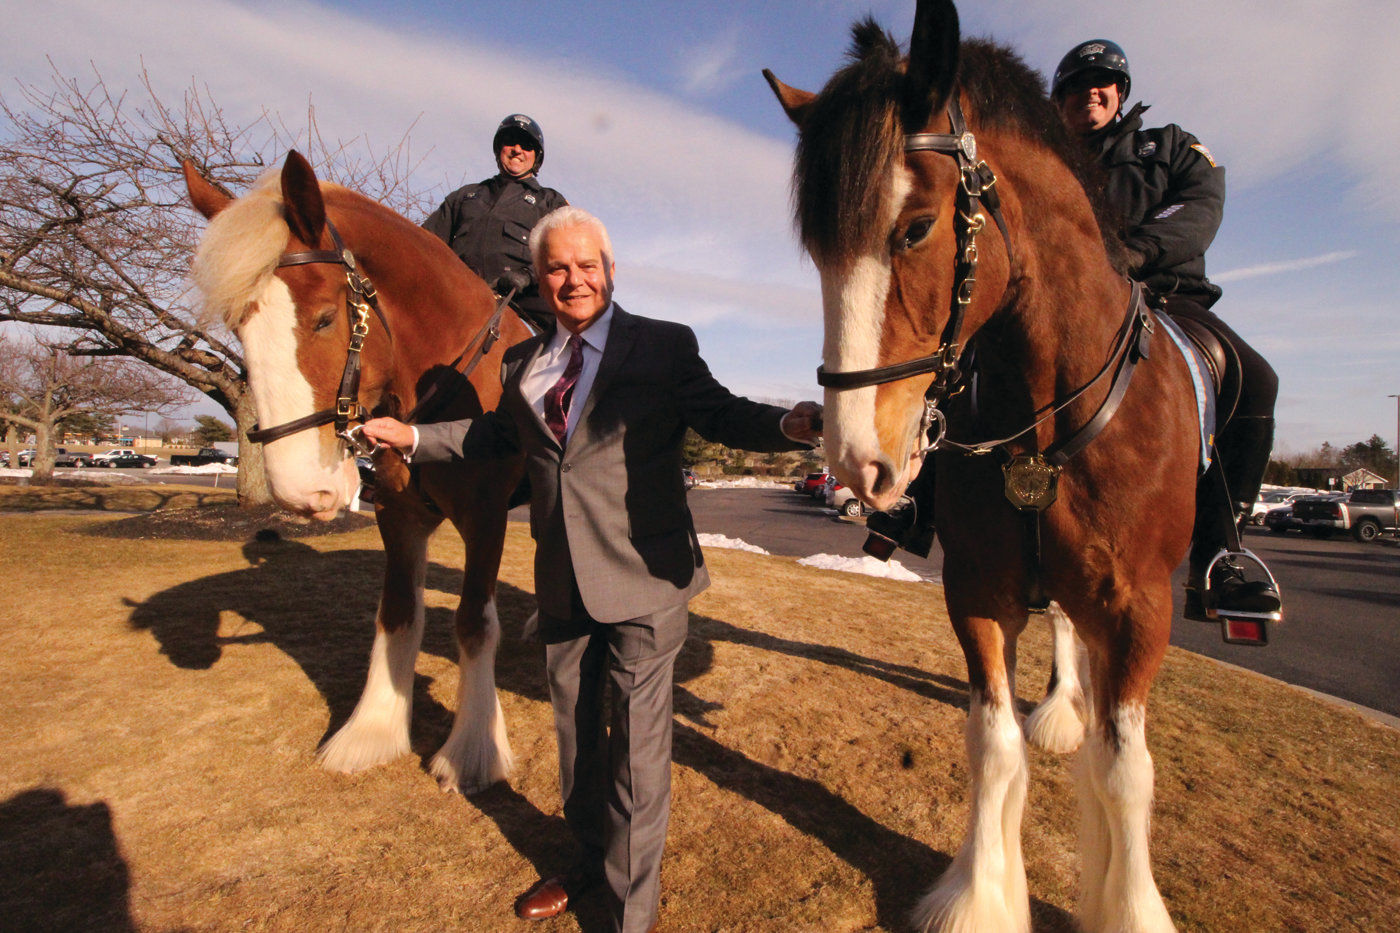 BRING IN THE CAVALRY: Johnston Police Chief Richard Tamburini organized the inclusion of Providence Mounted Unit Clydesdales, which stood tall at the entrance to the Crowne Plaza on Thursday evening.